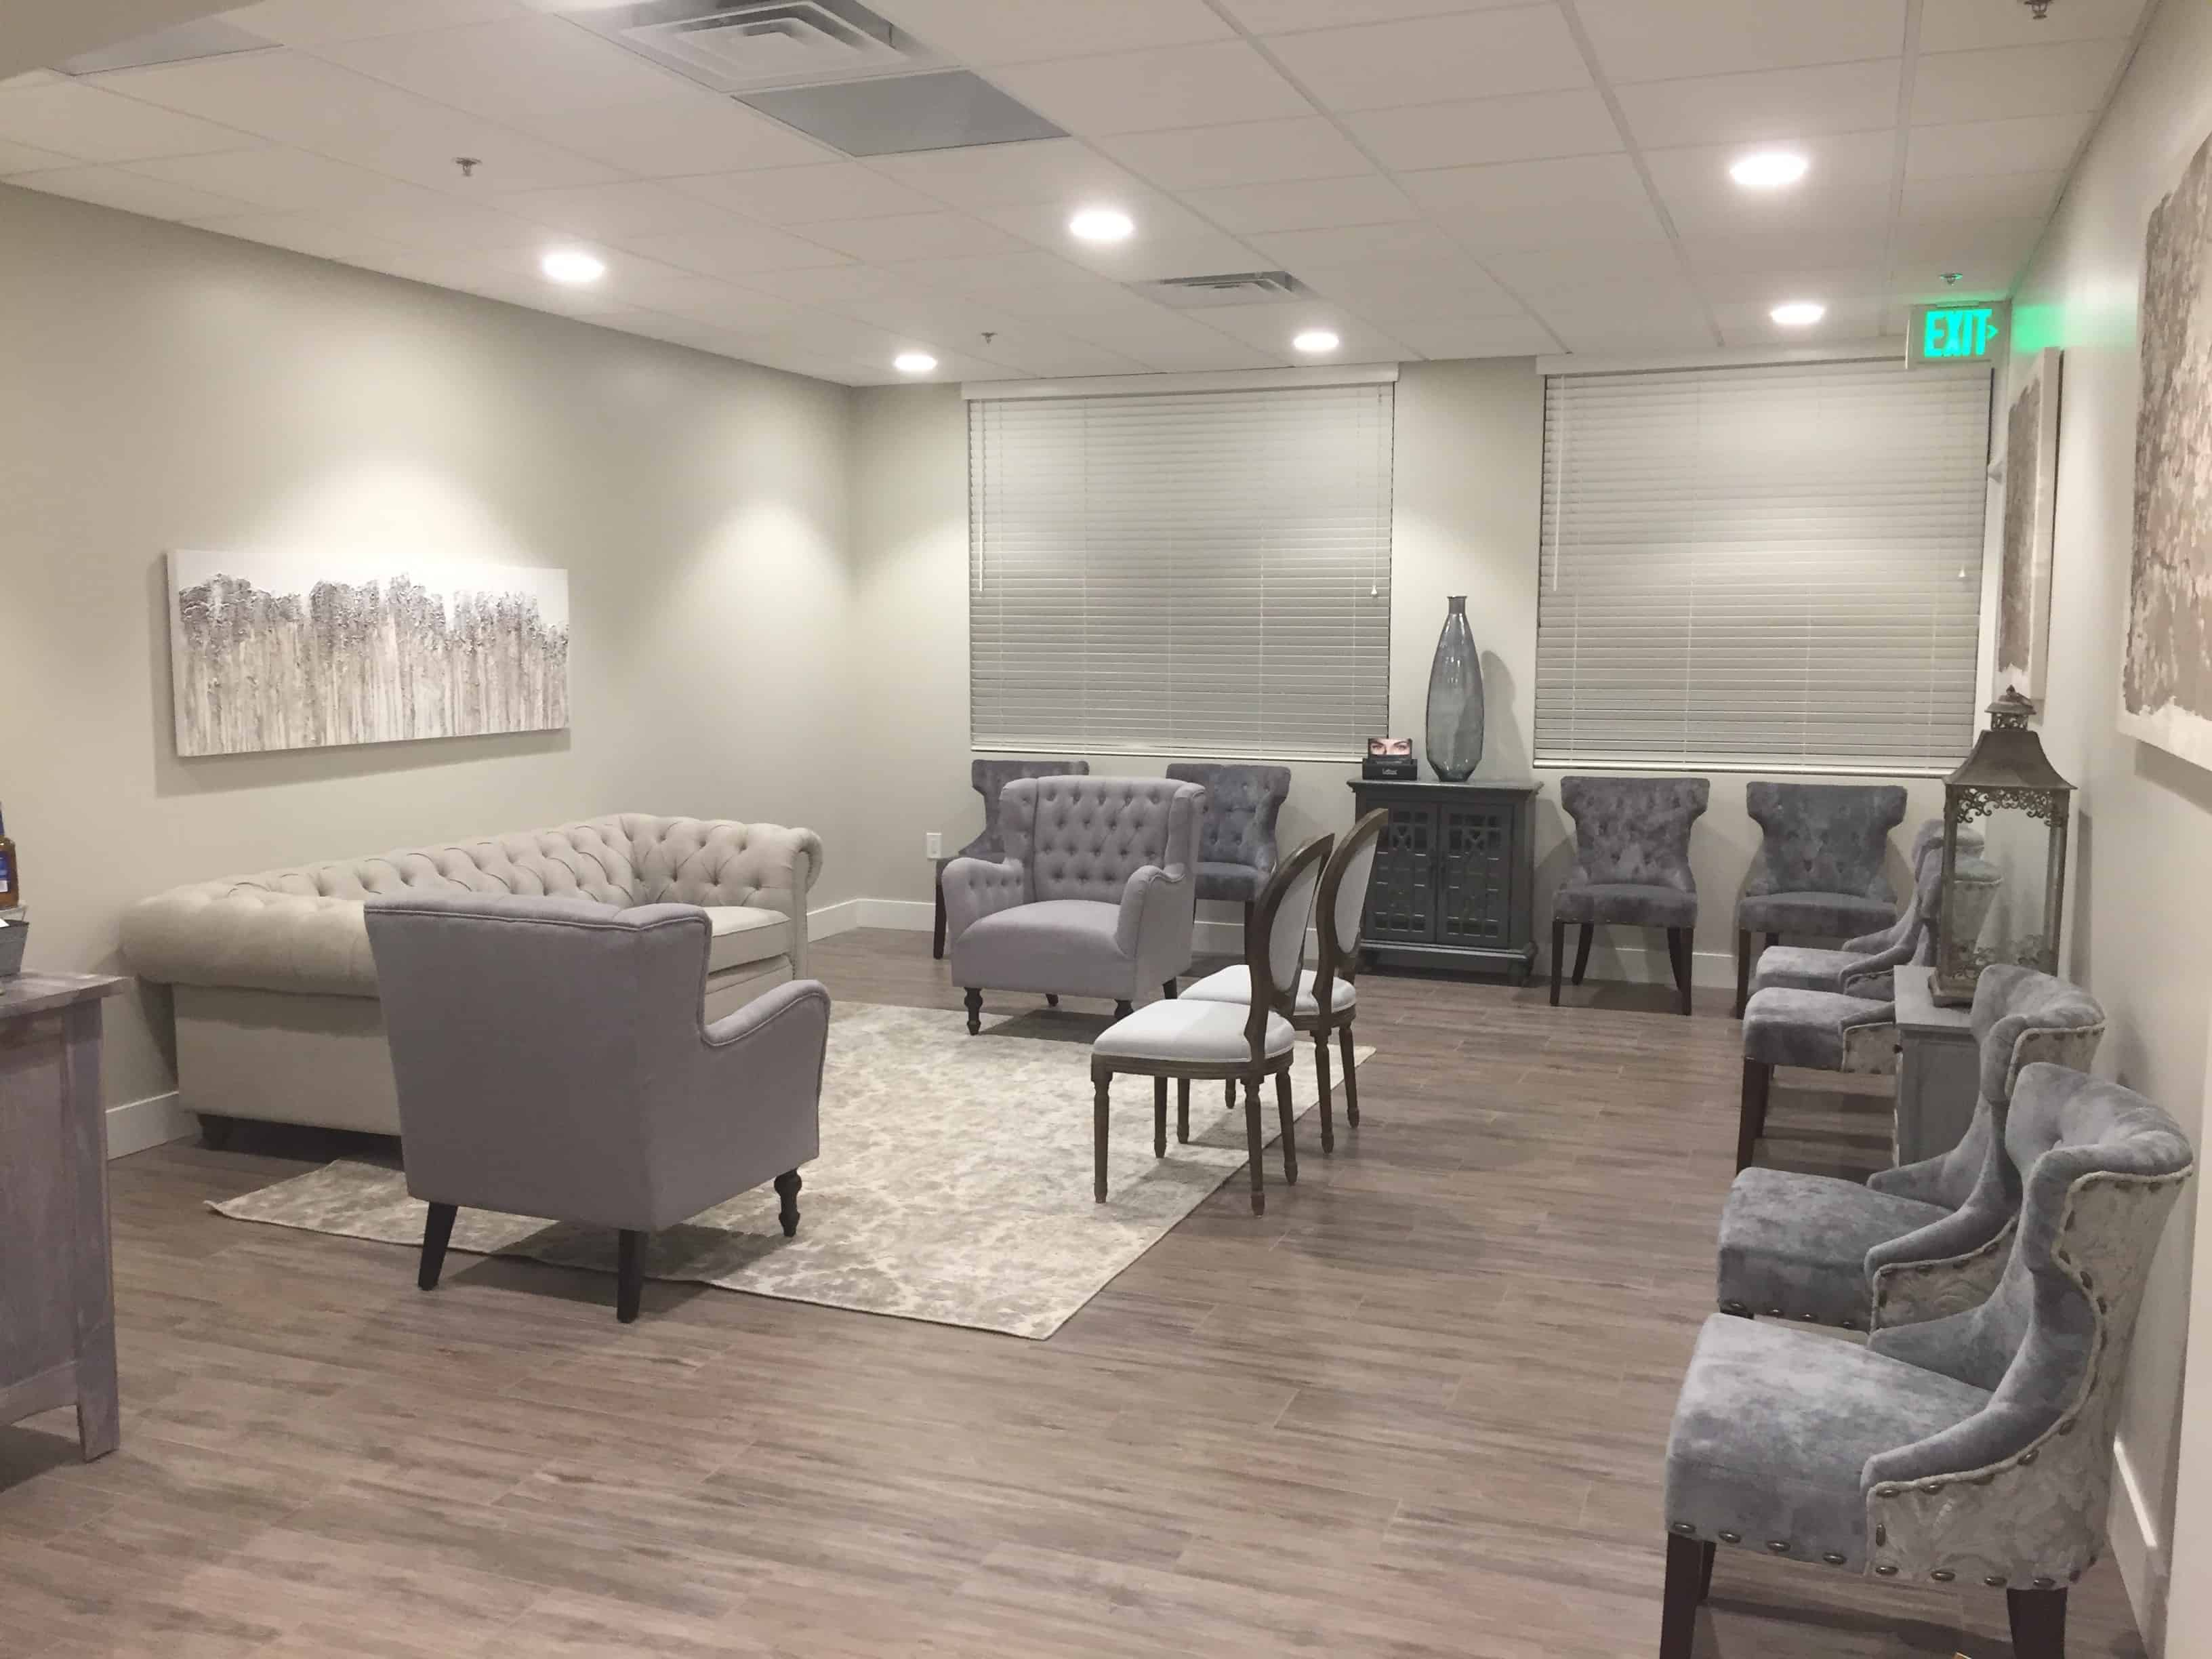 Plastic Surgery Waiting Room Granite Bay